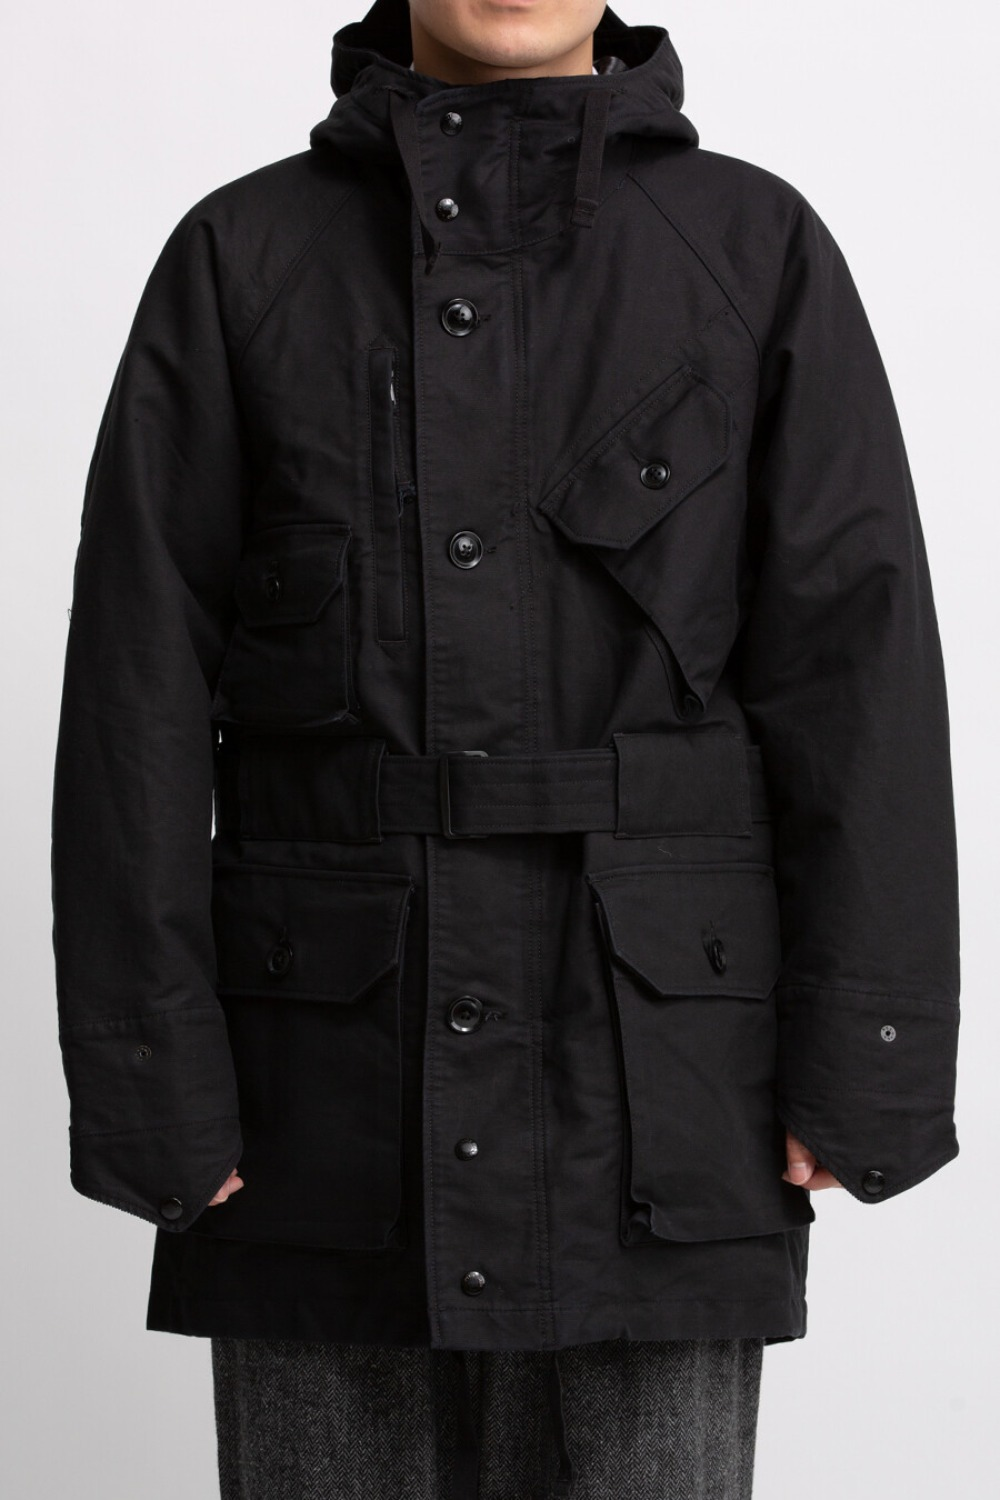 FIELD PARKA BLACK COTTON DOUBLE CLOTH